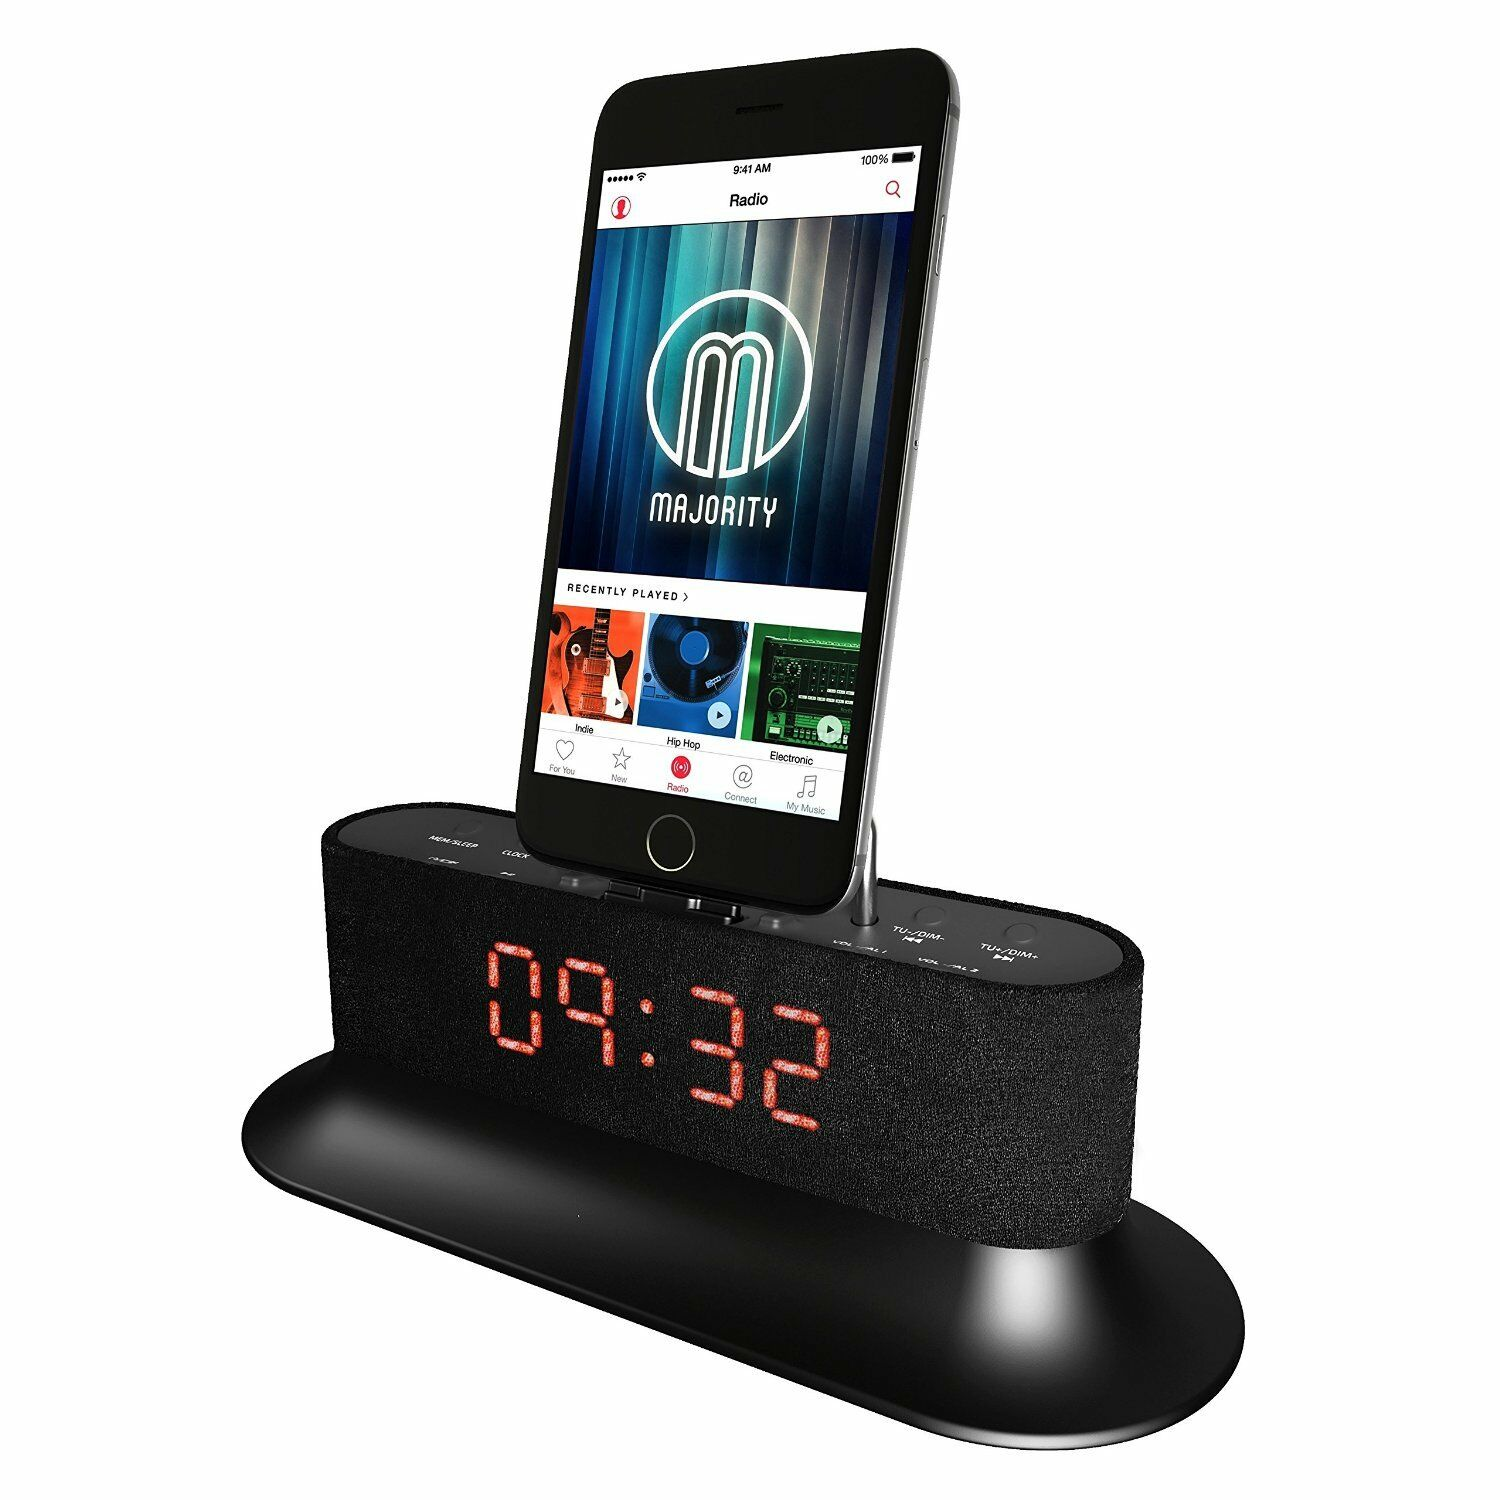 mercury docking station speaker dock alarm for ipod iphone 5 5s 5c 6 6 7 ebay. Black Bedroom Furniture Sets. Home Design Ideas